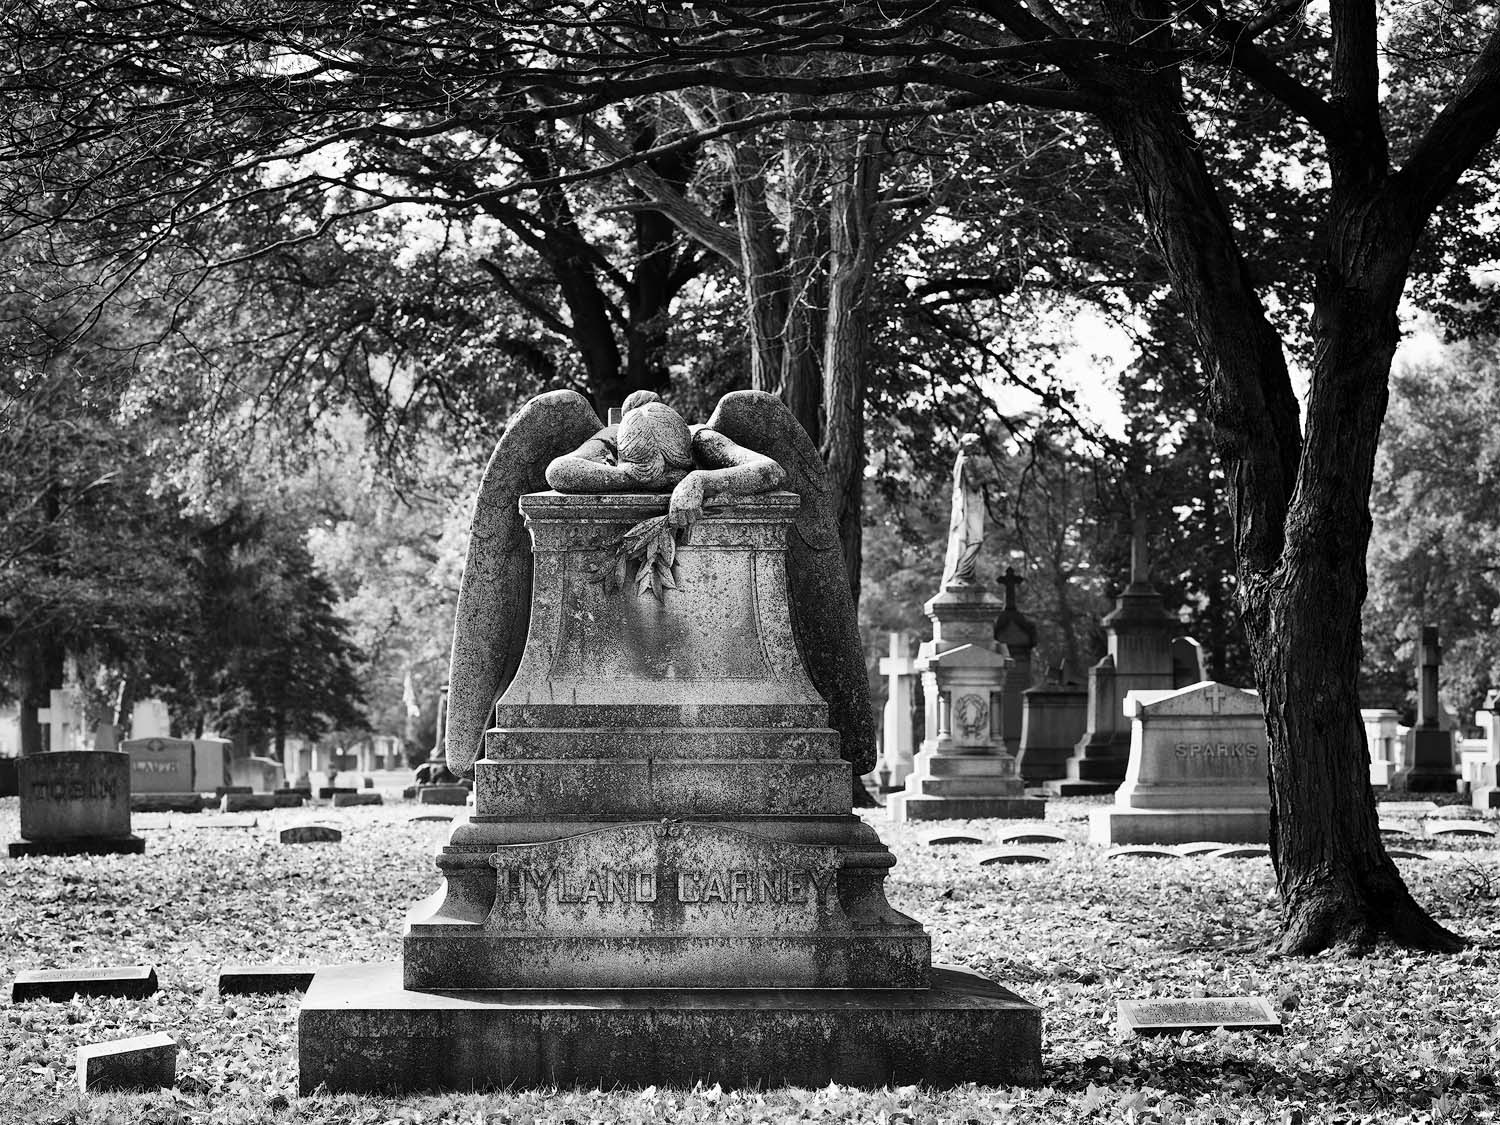 North America, United States of America, Missouri, St. Louis, Calvary Cemetery, architecture, landscape, cemetery, death, photo